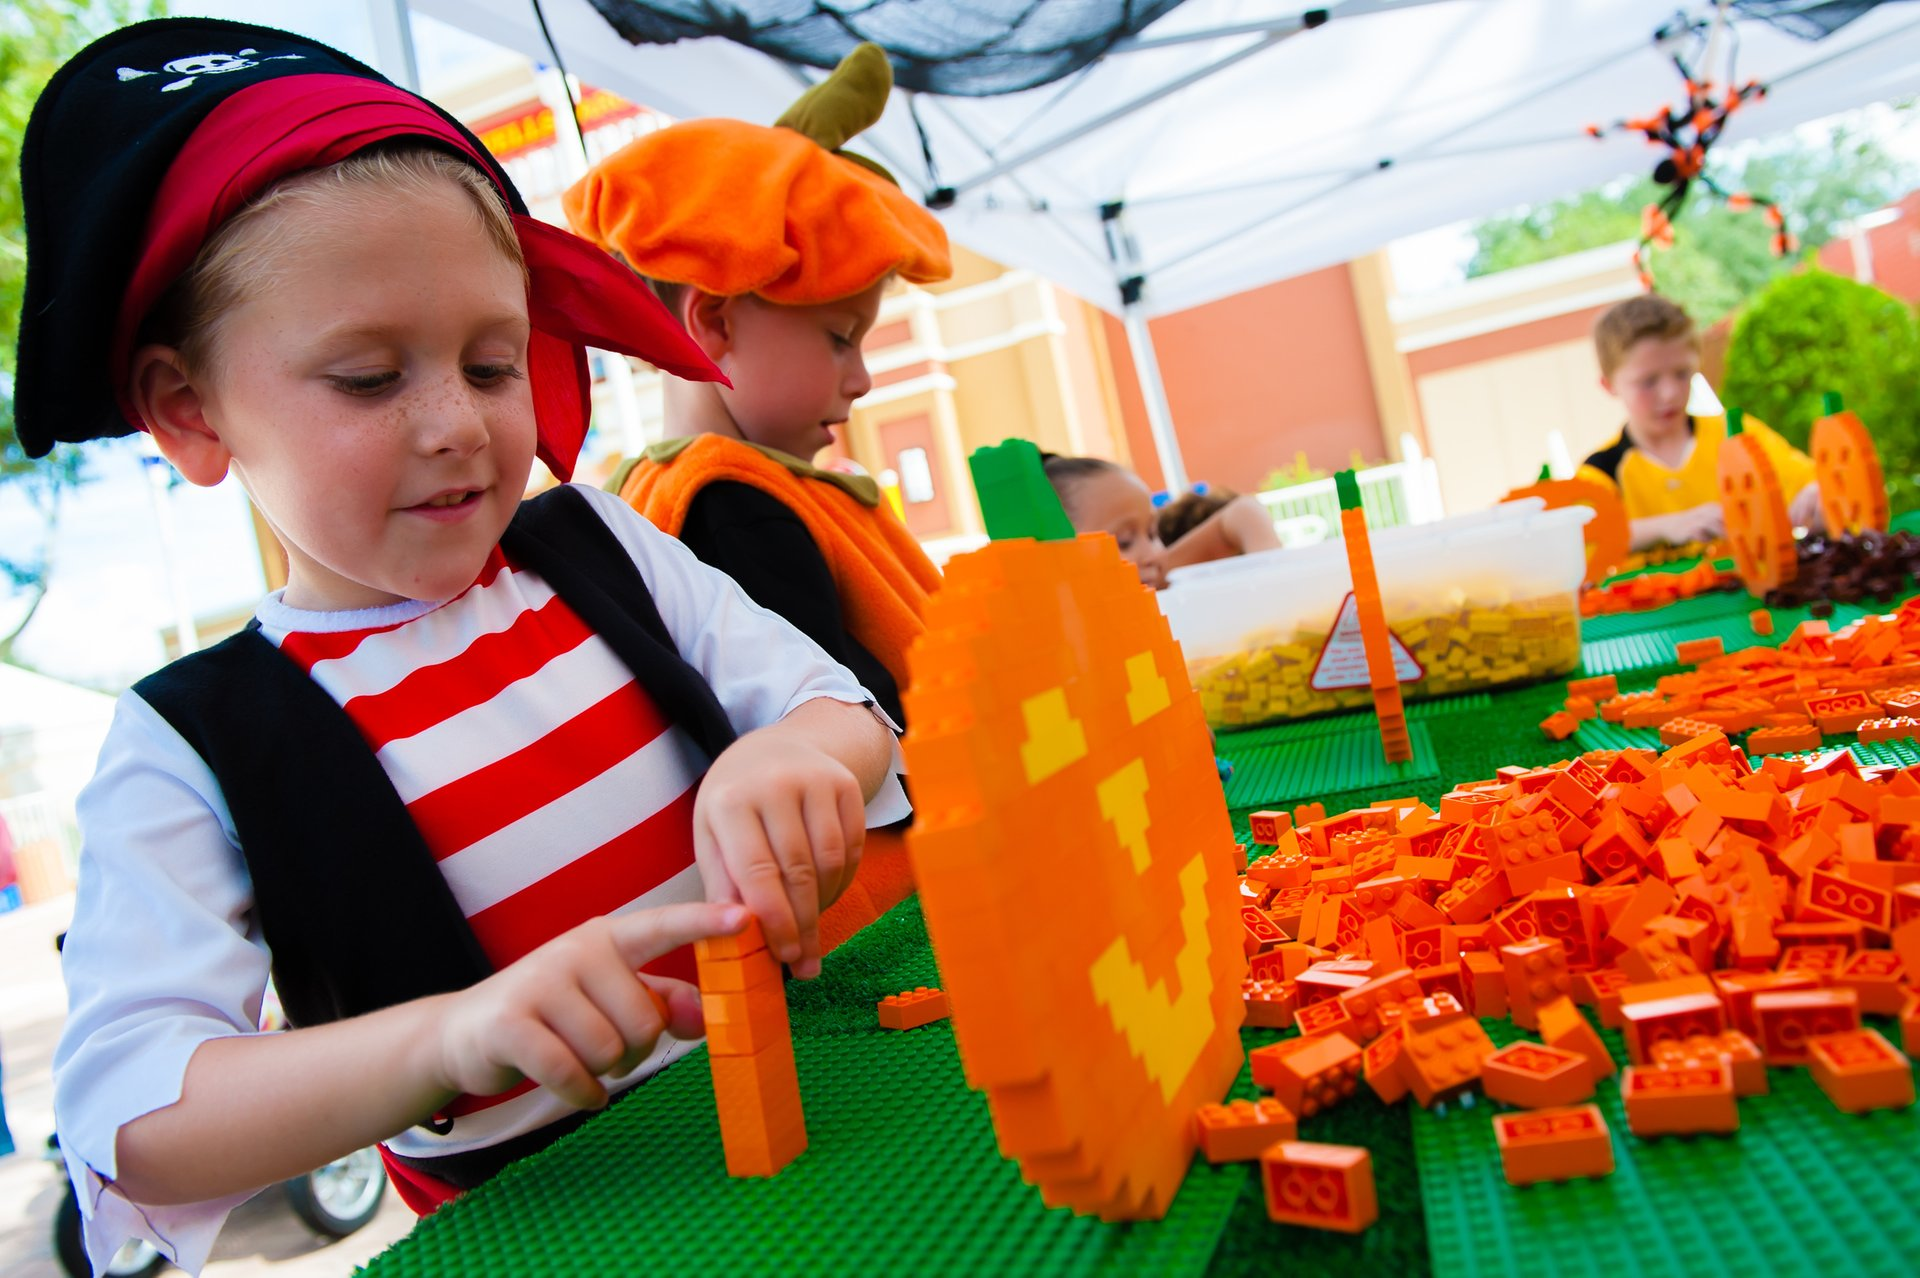 Pumpkin build during Brick-or-Treat at Legoland California 2020